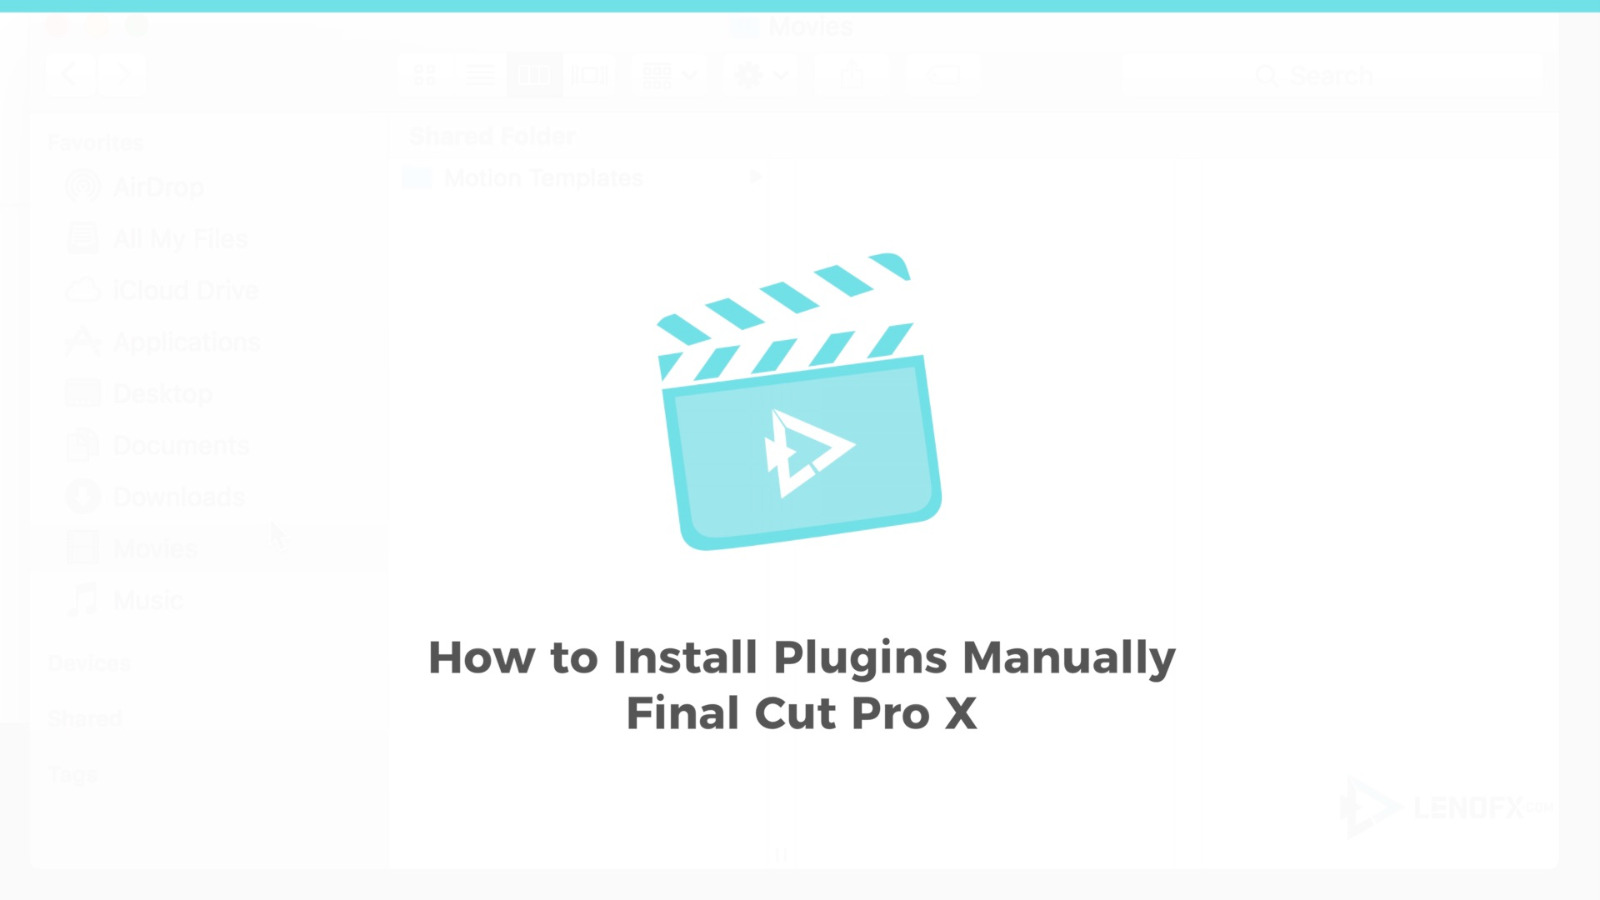 How to Install Plugins Manually for FCPX